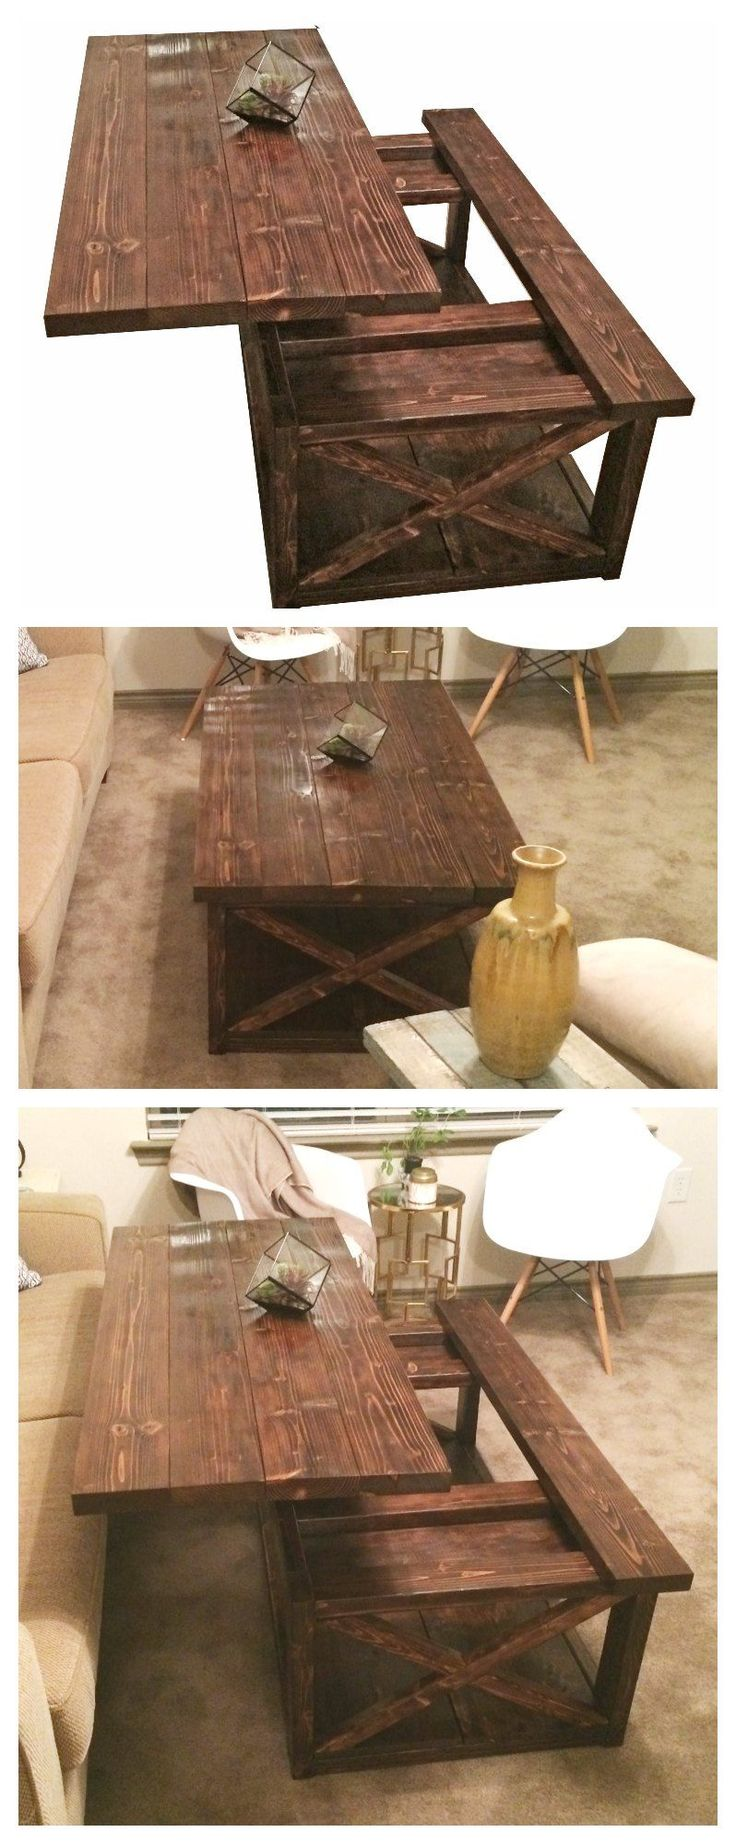 Best 25 diy coffee table ideas on pinterest diy wood table diy lift top coffee table they shared plans for flat table but not for lift function geotapseo Image collections